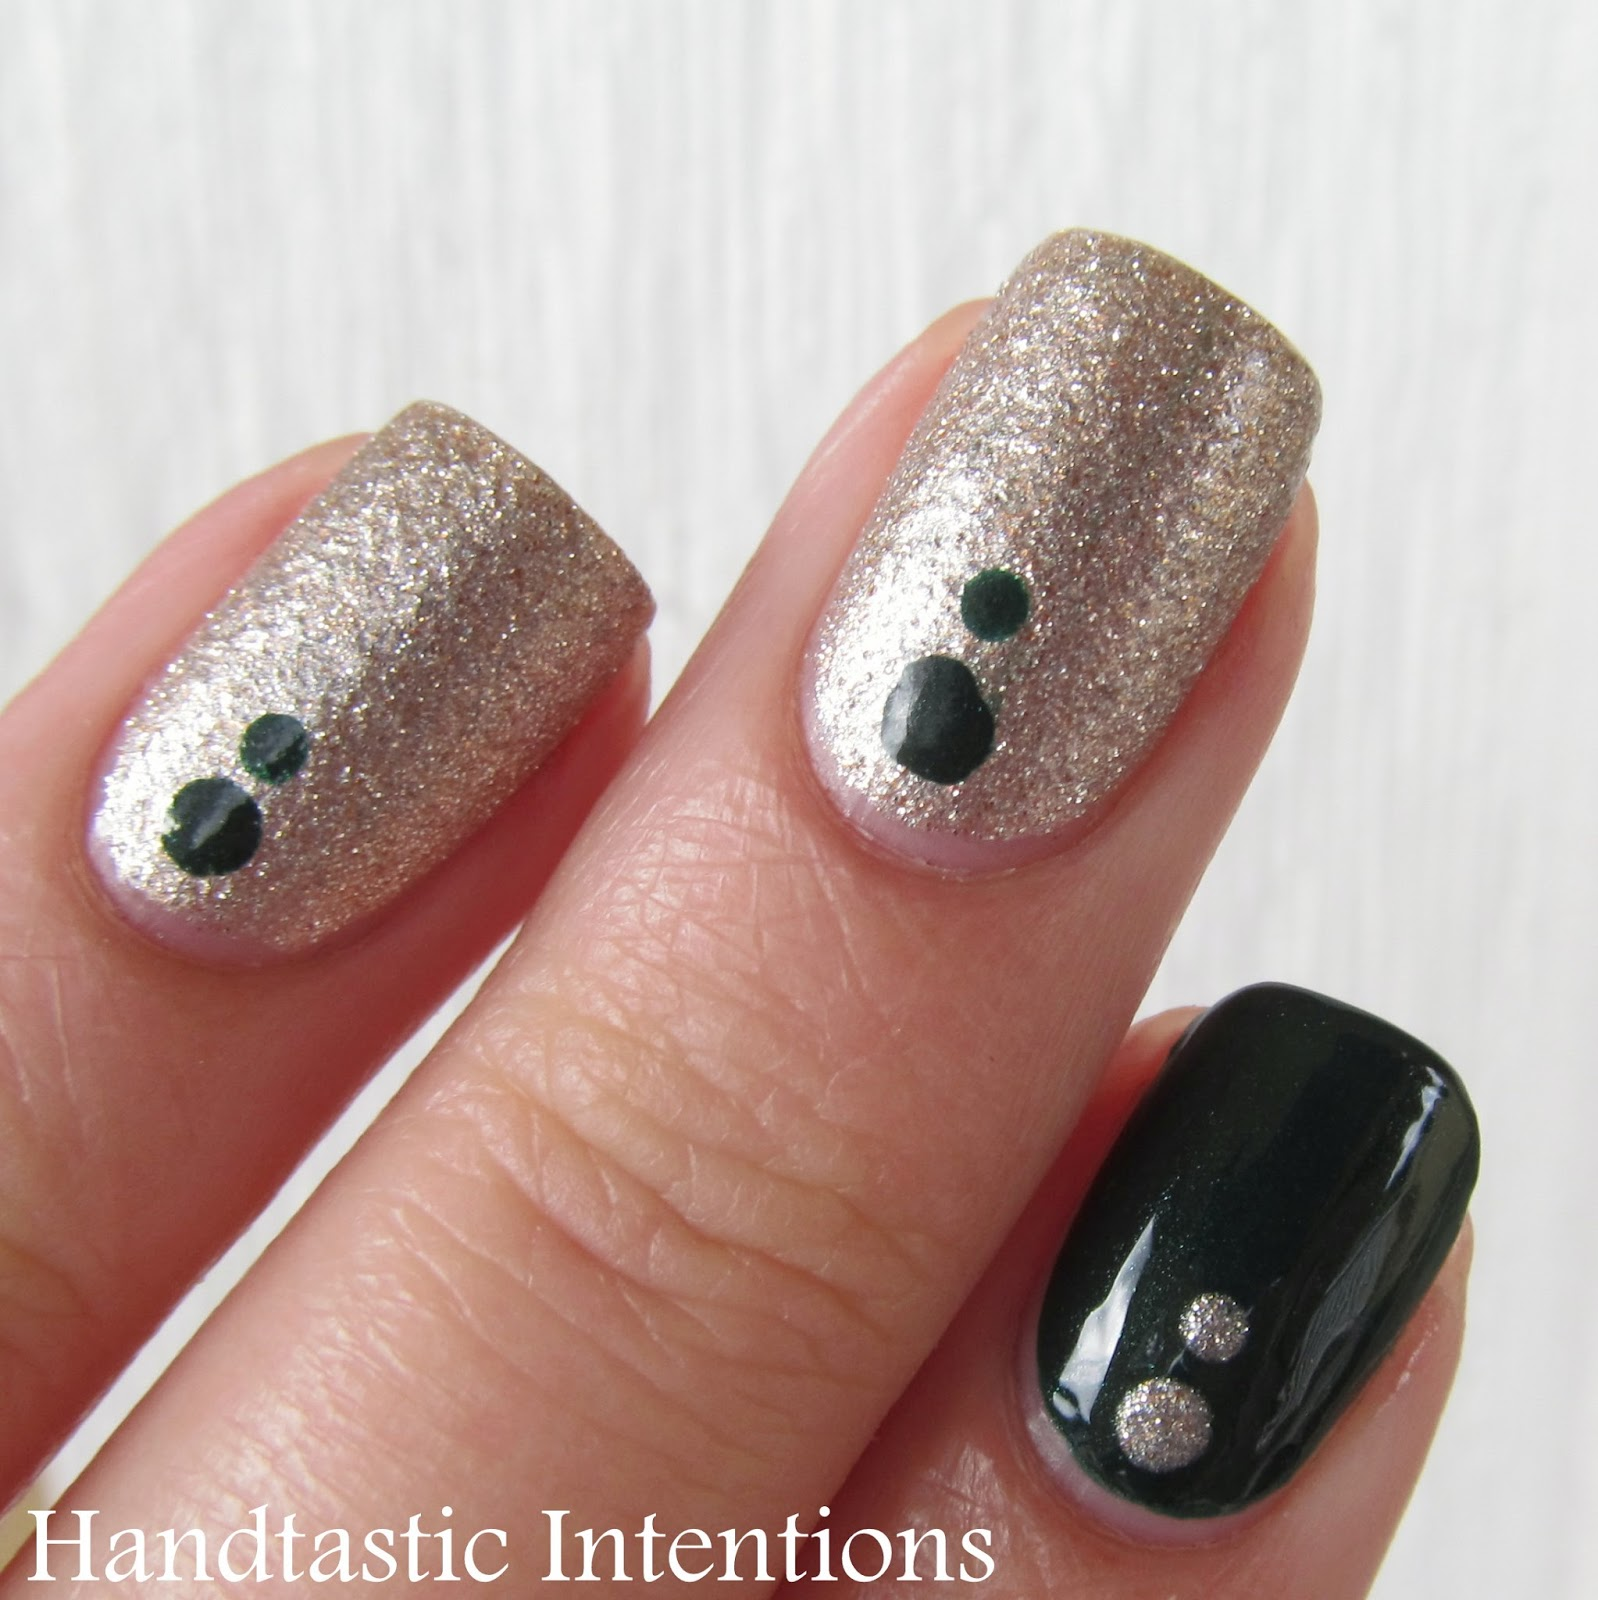 Handtastic Intentions: Nail Art: Emerald City